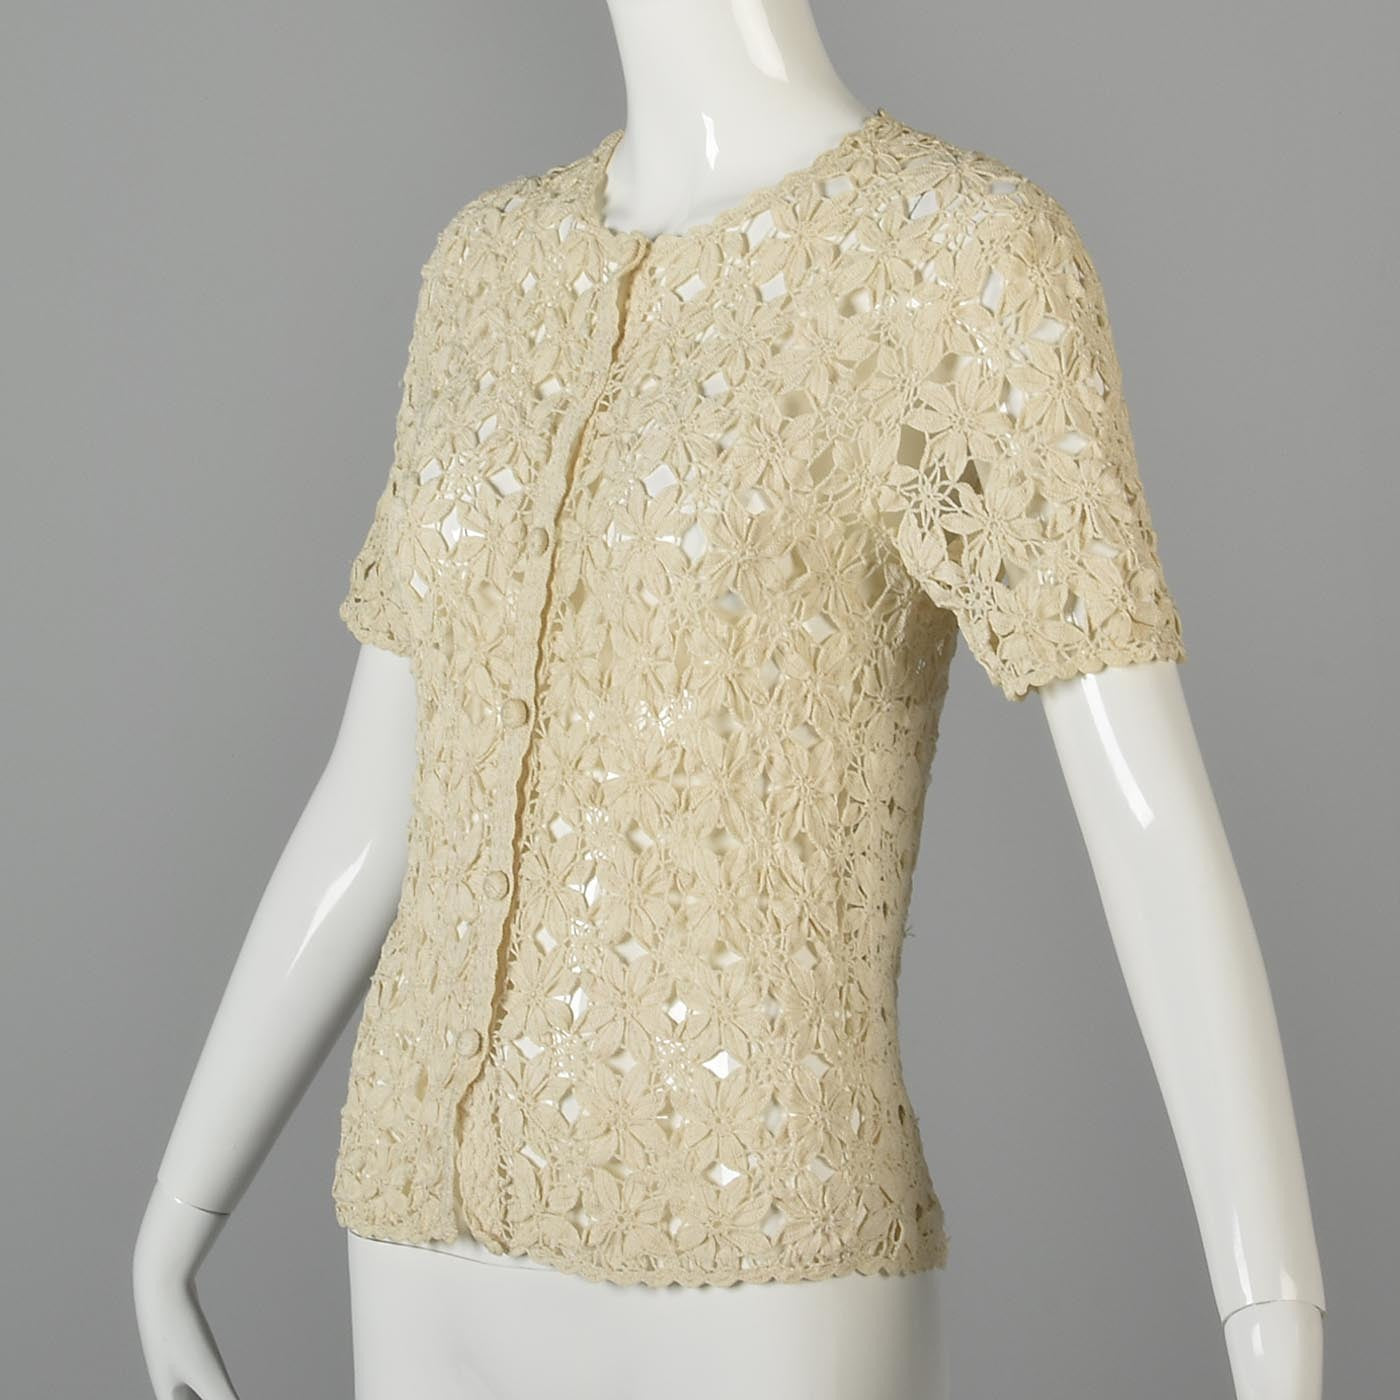 1960s Cotton Crochet Cardigan with Floral Design